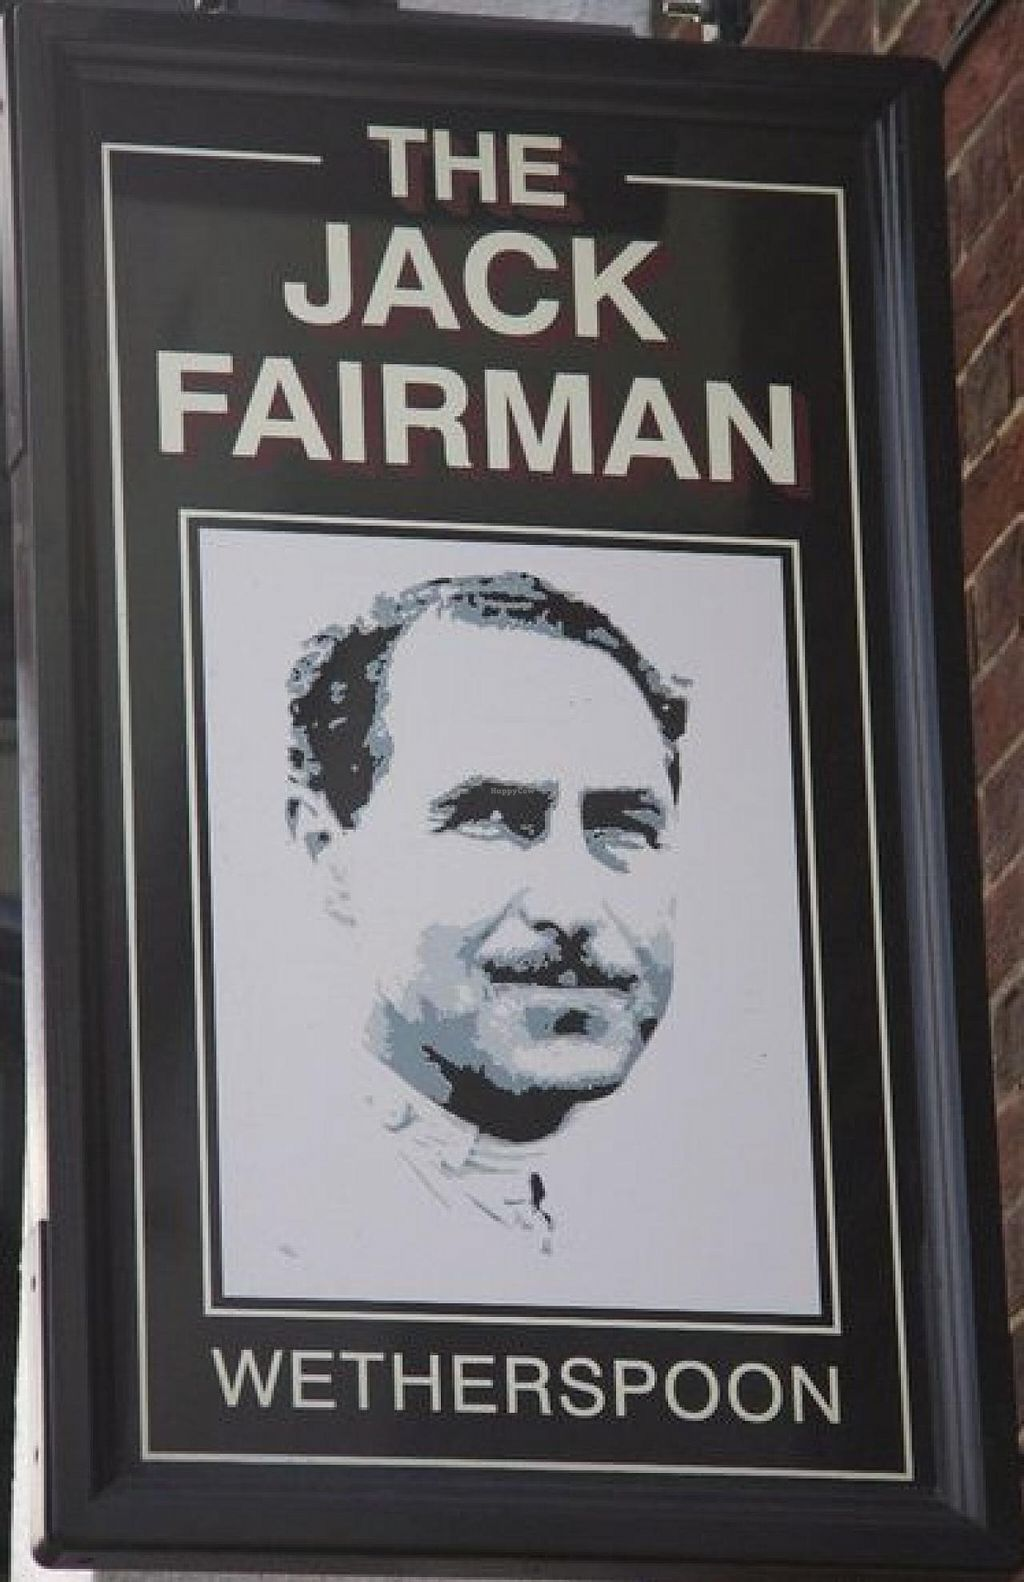 The Jack Fairman Public House